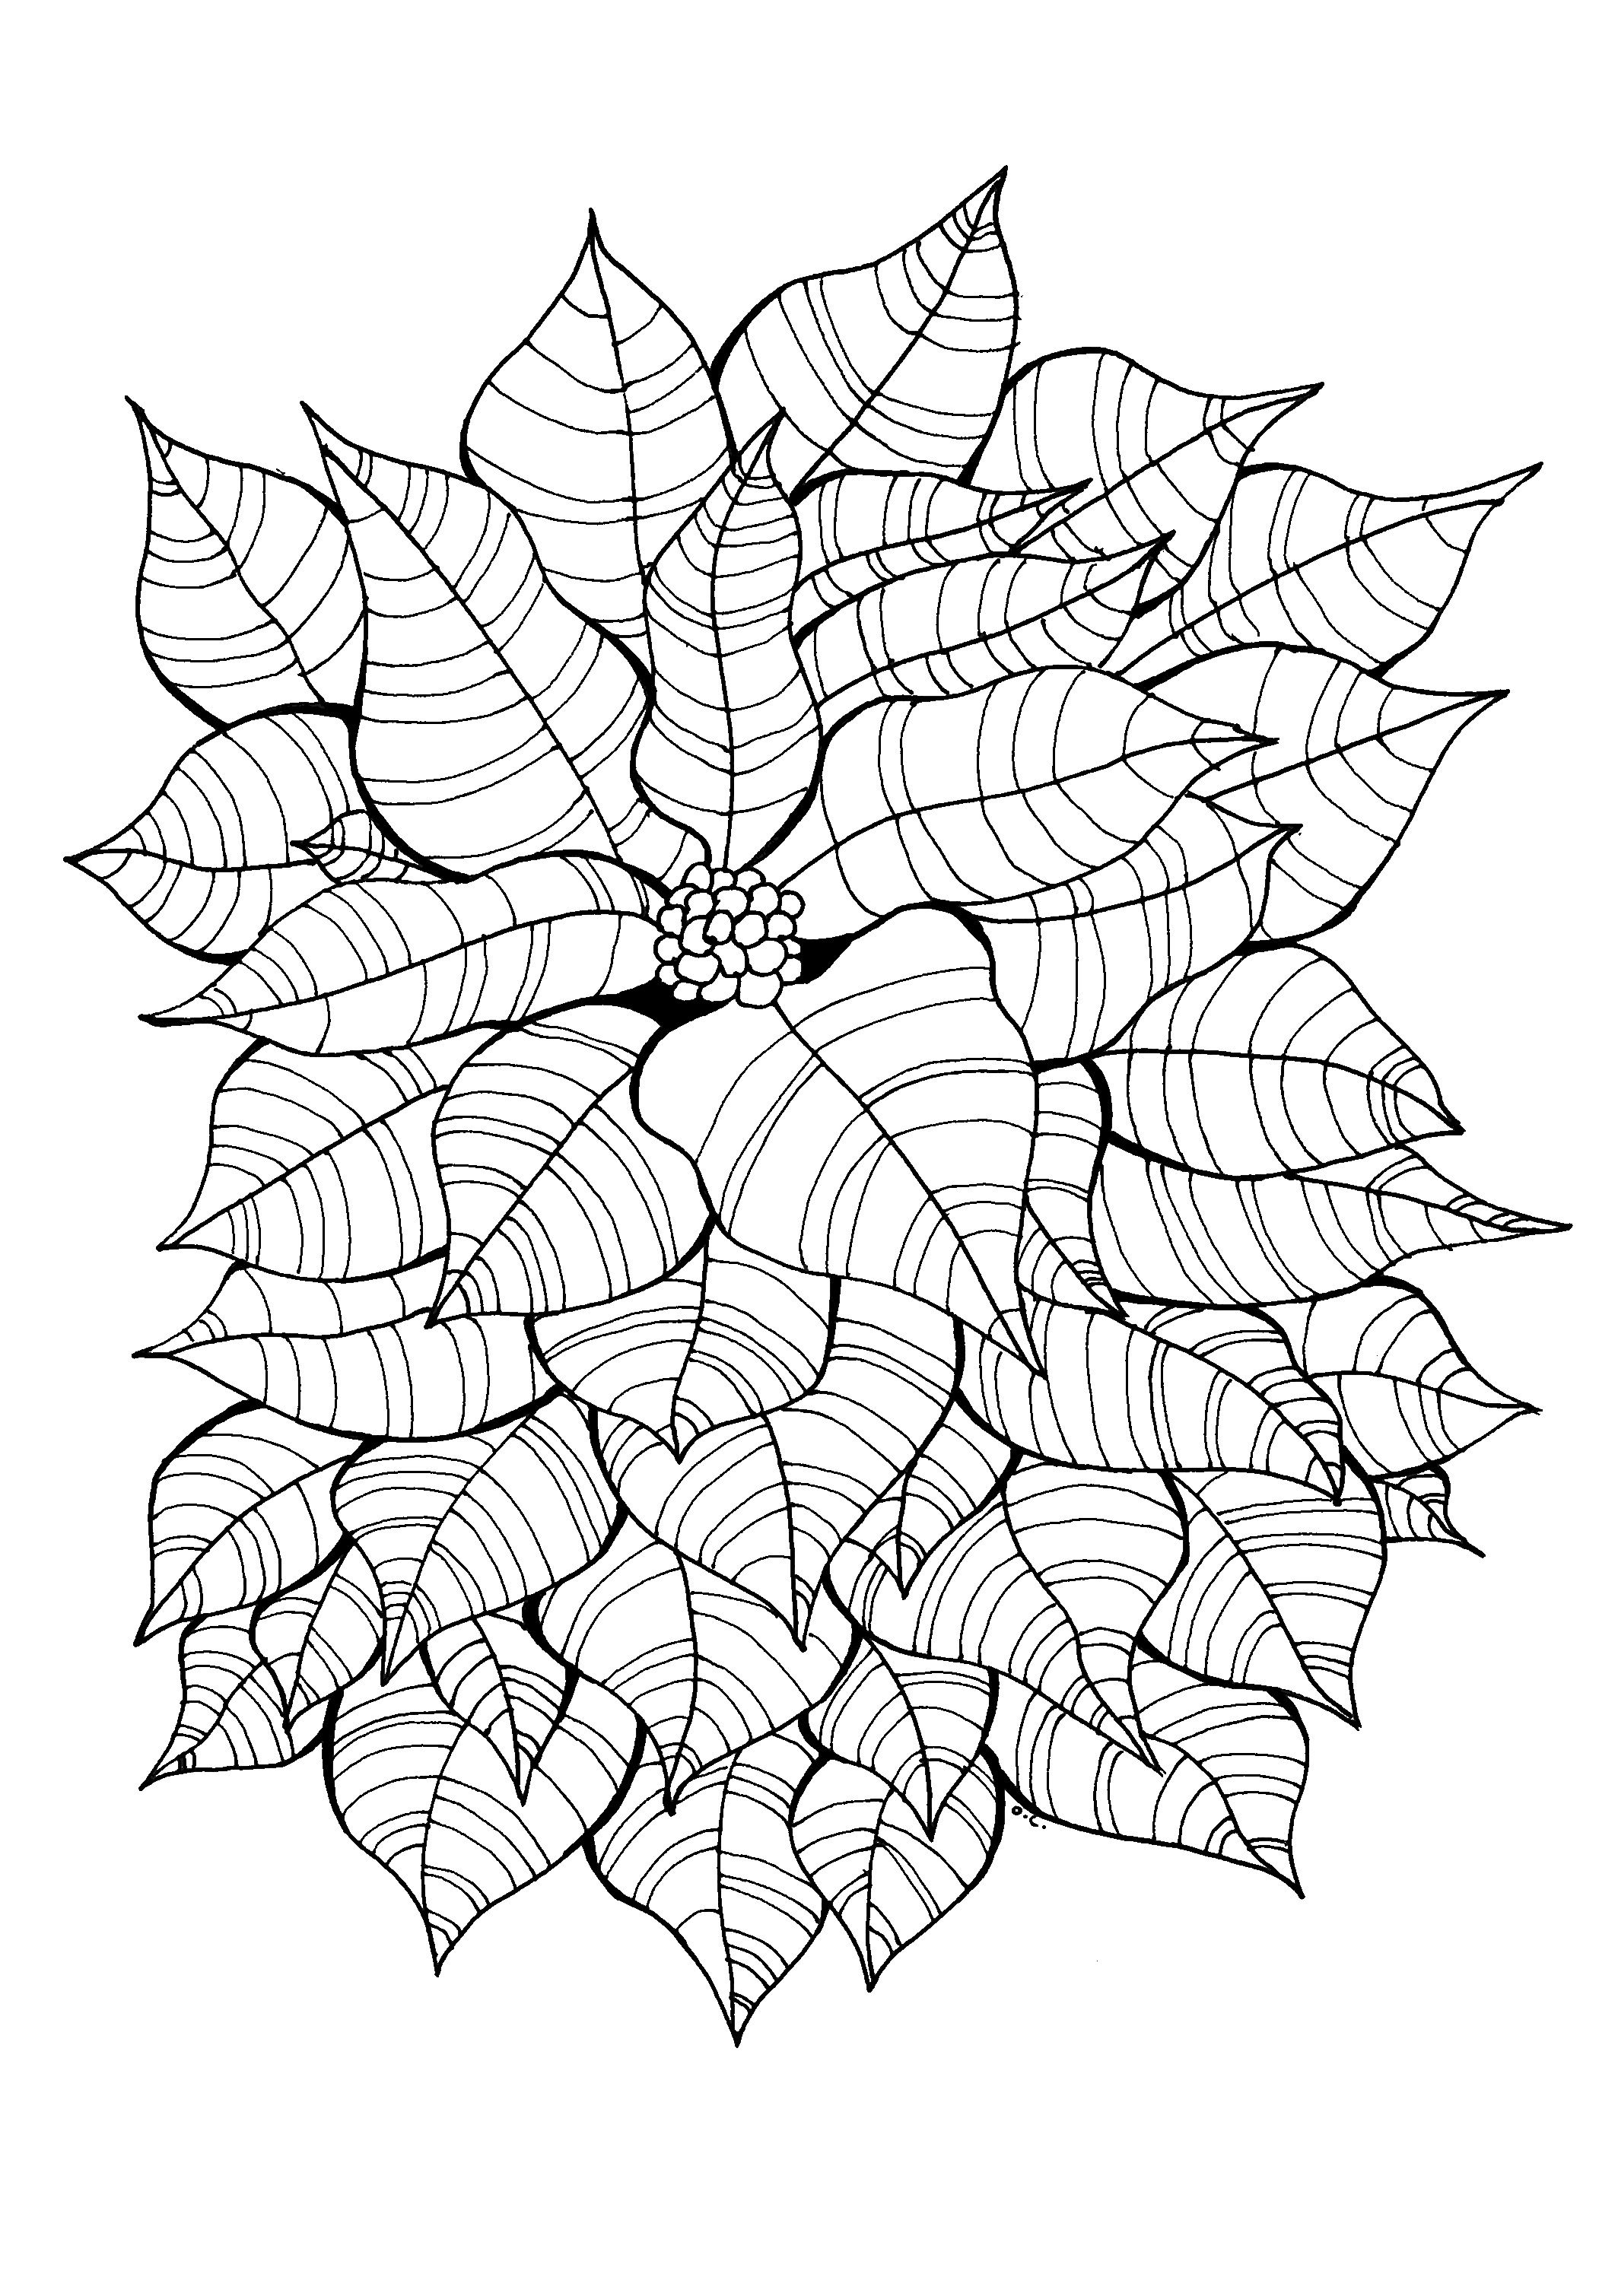 Simple Flowers Flowers Vegetation Coloring Pages For Adults